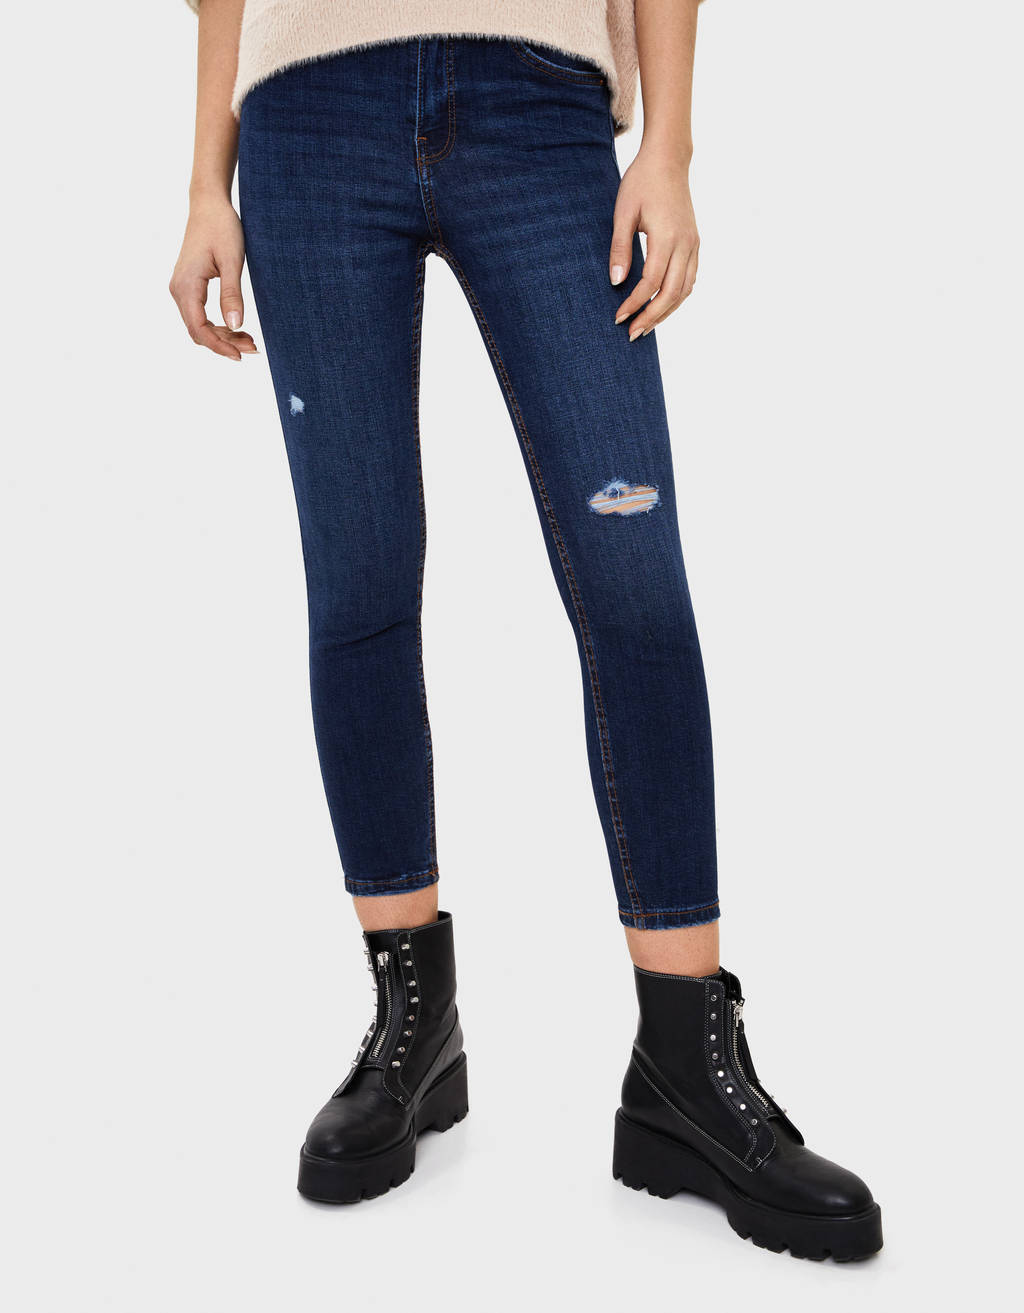 Cropped mid waist skinny jeans